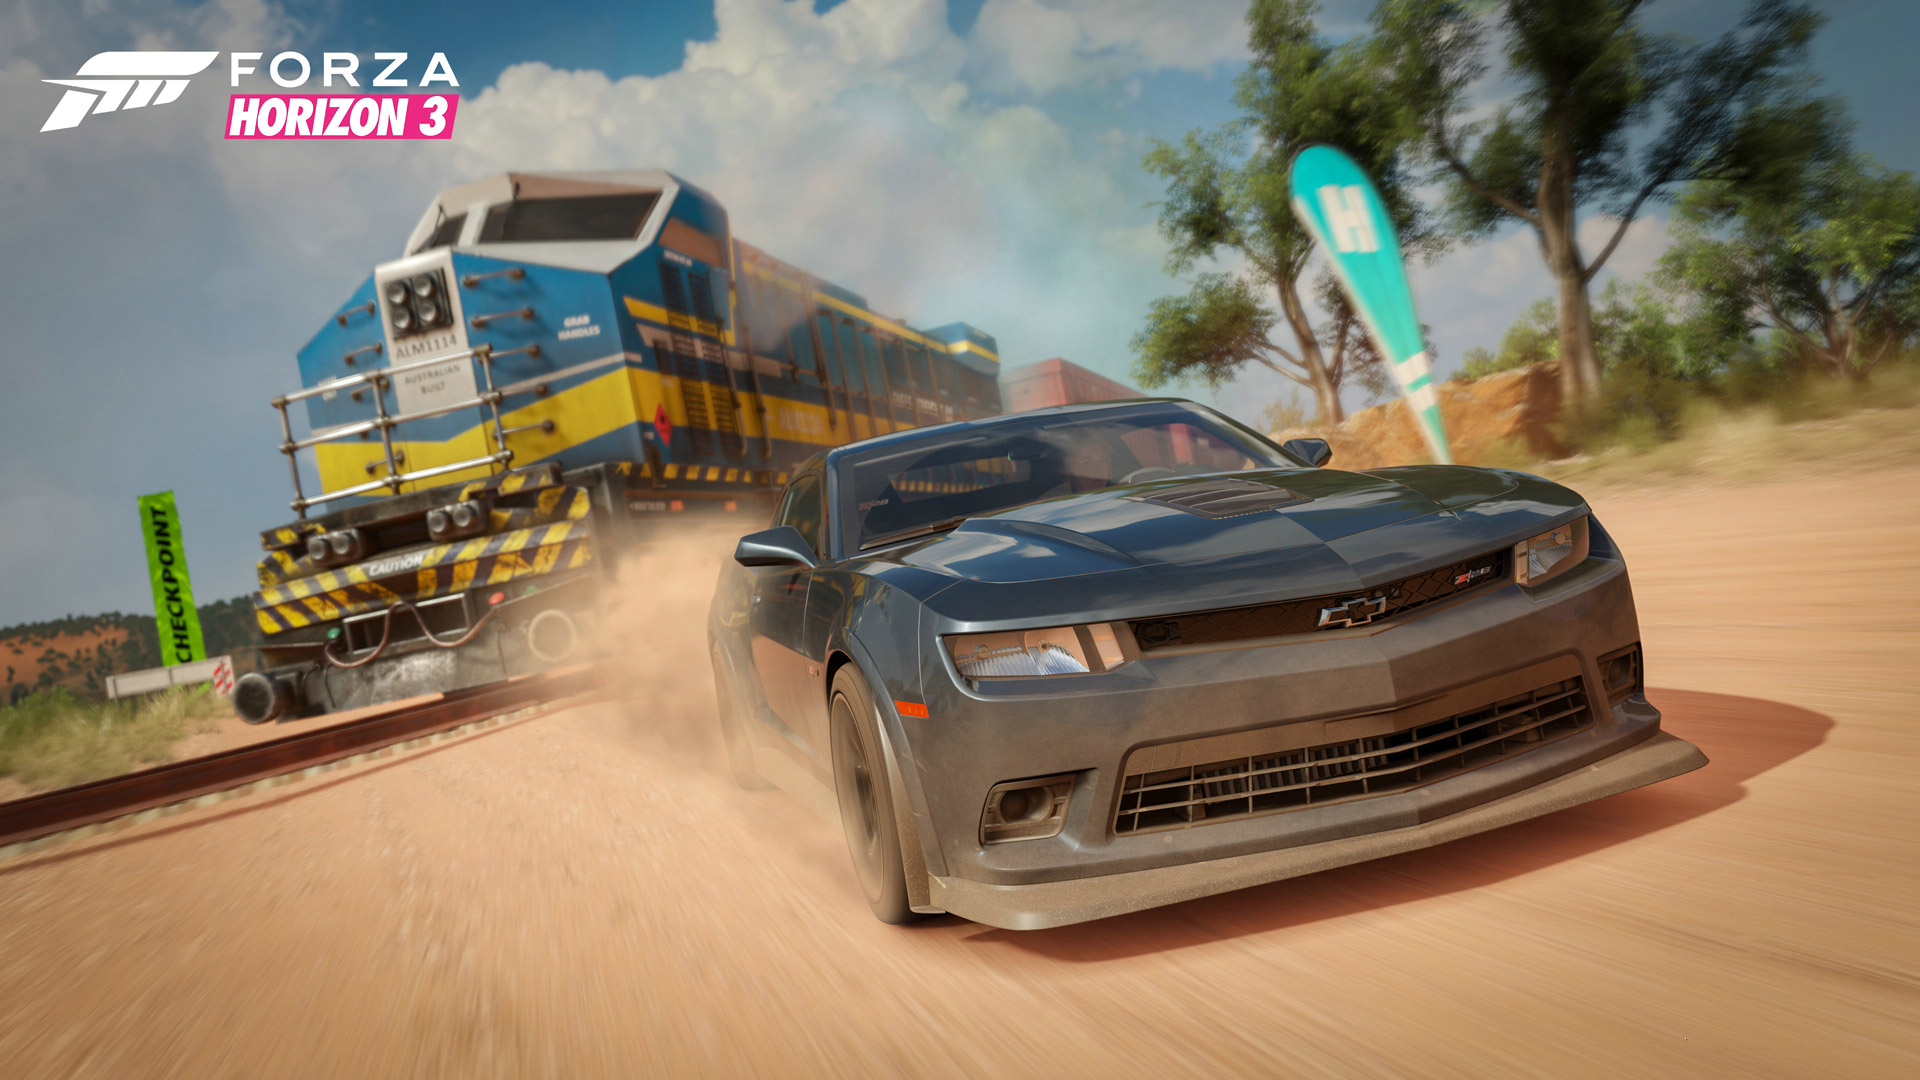 Forza Horizon 3 Wallpaper in 1920x1080